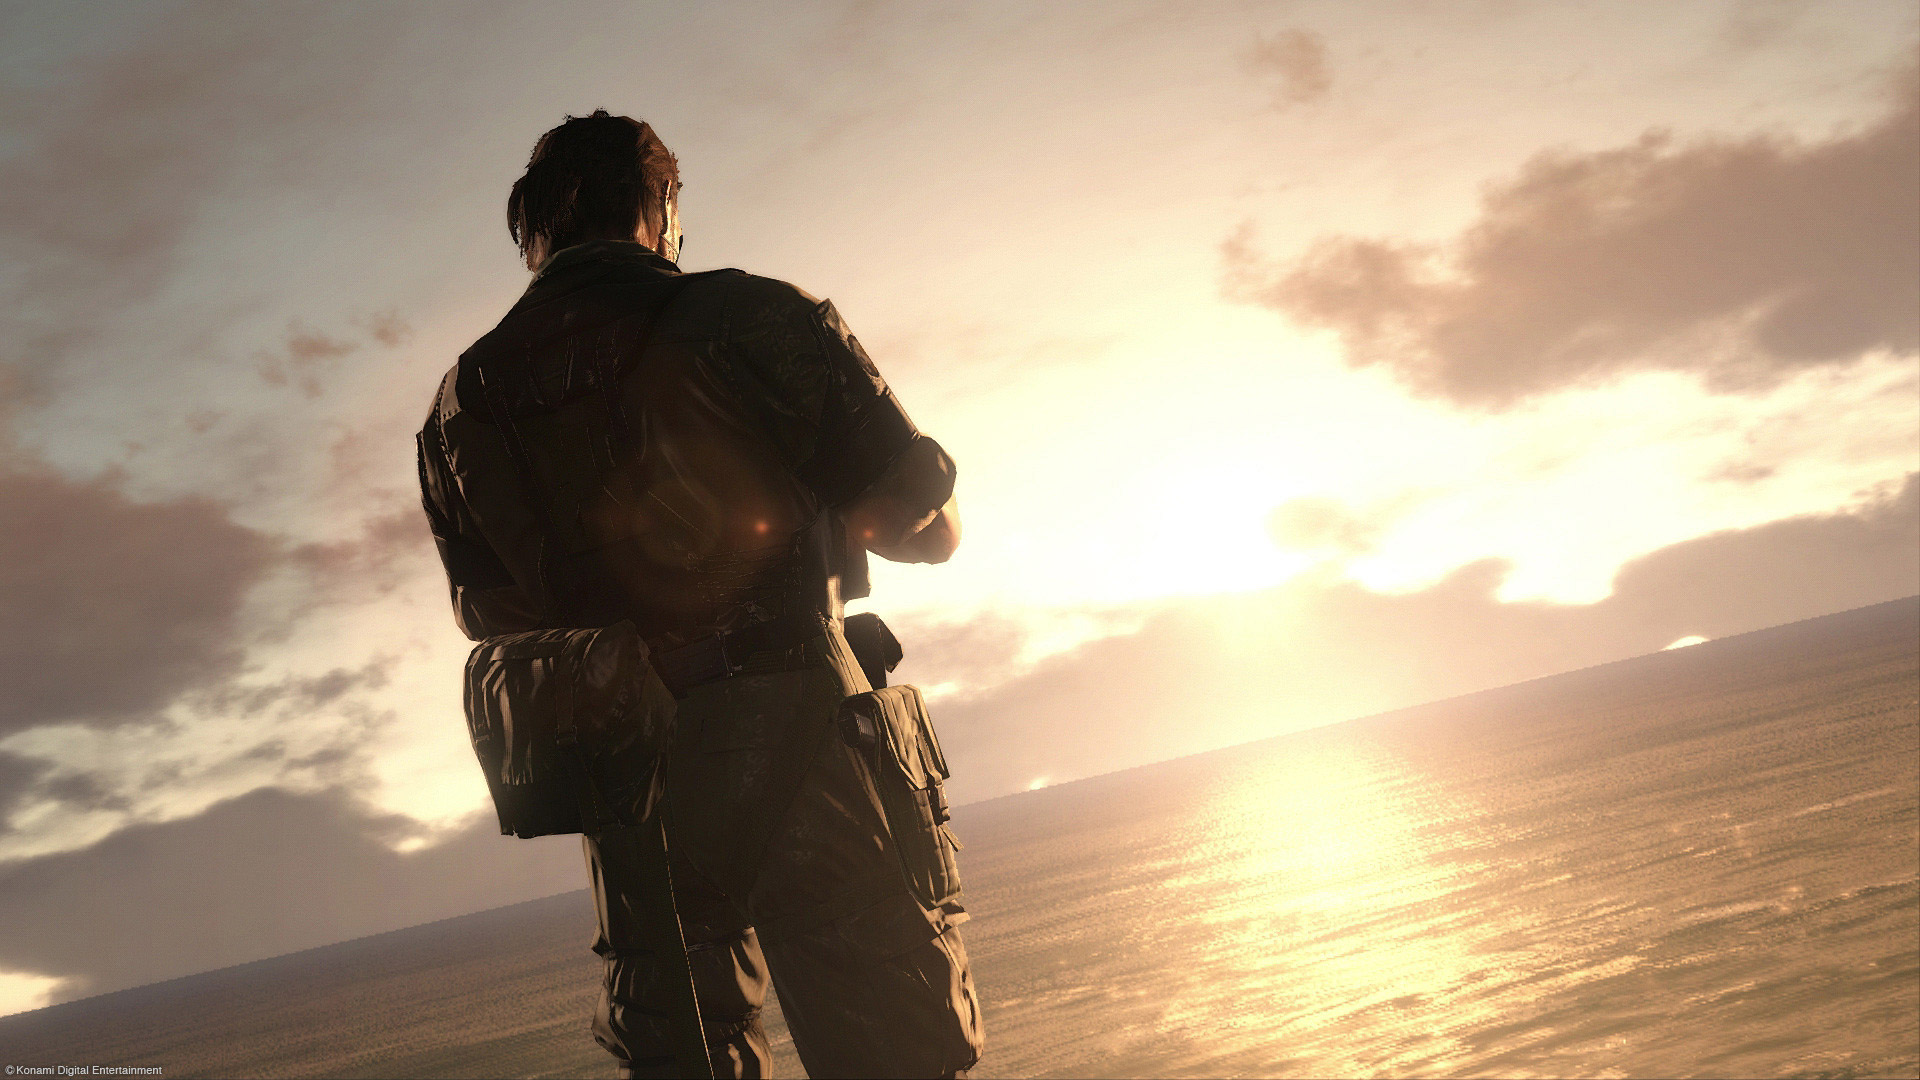 Metal Gear Solid V The Phantom Pain wallpaper 5